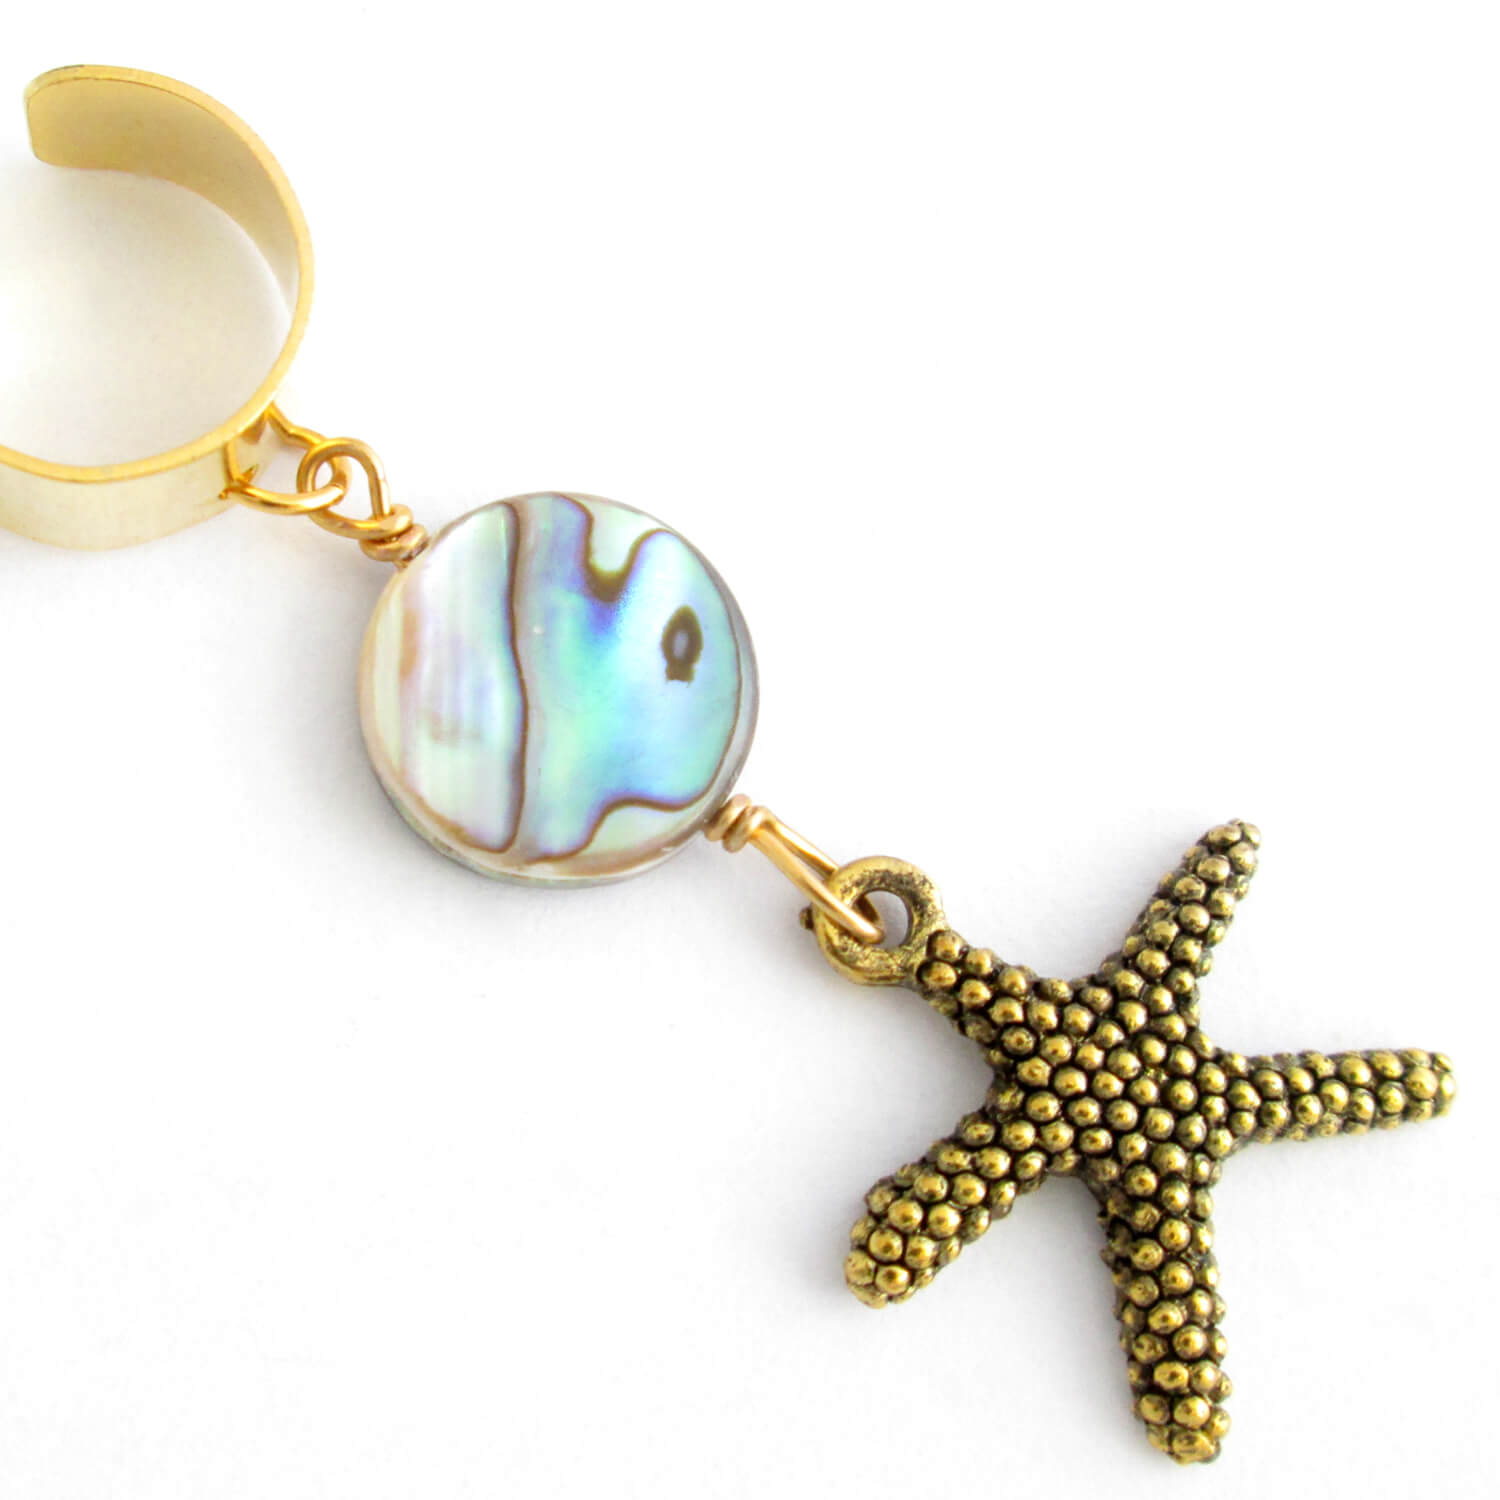 Gold Starfish Ear Cuff with Abalone Shell